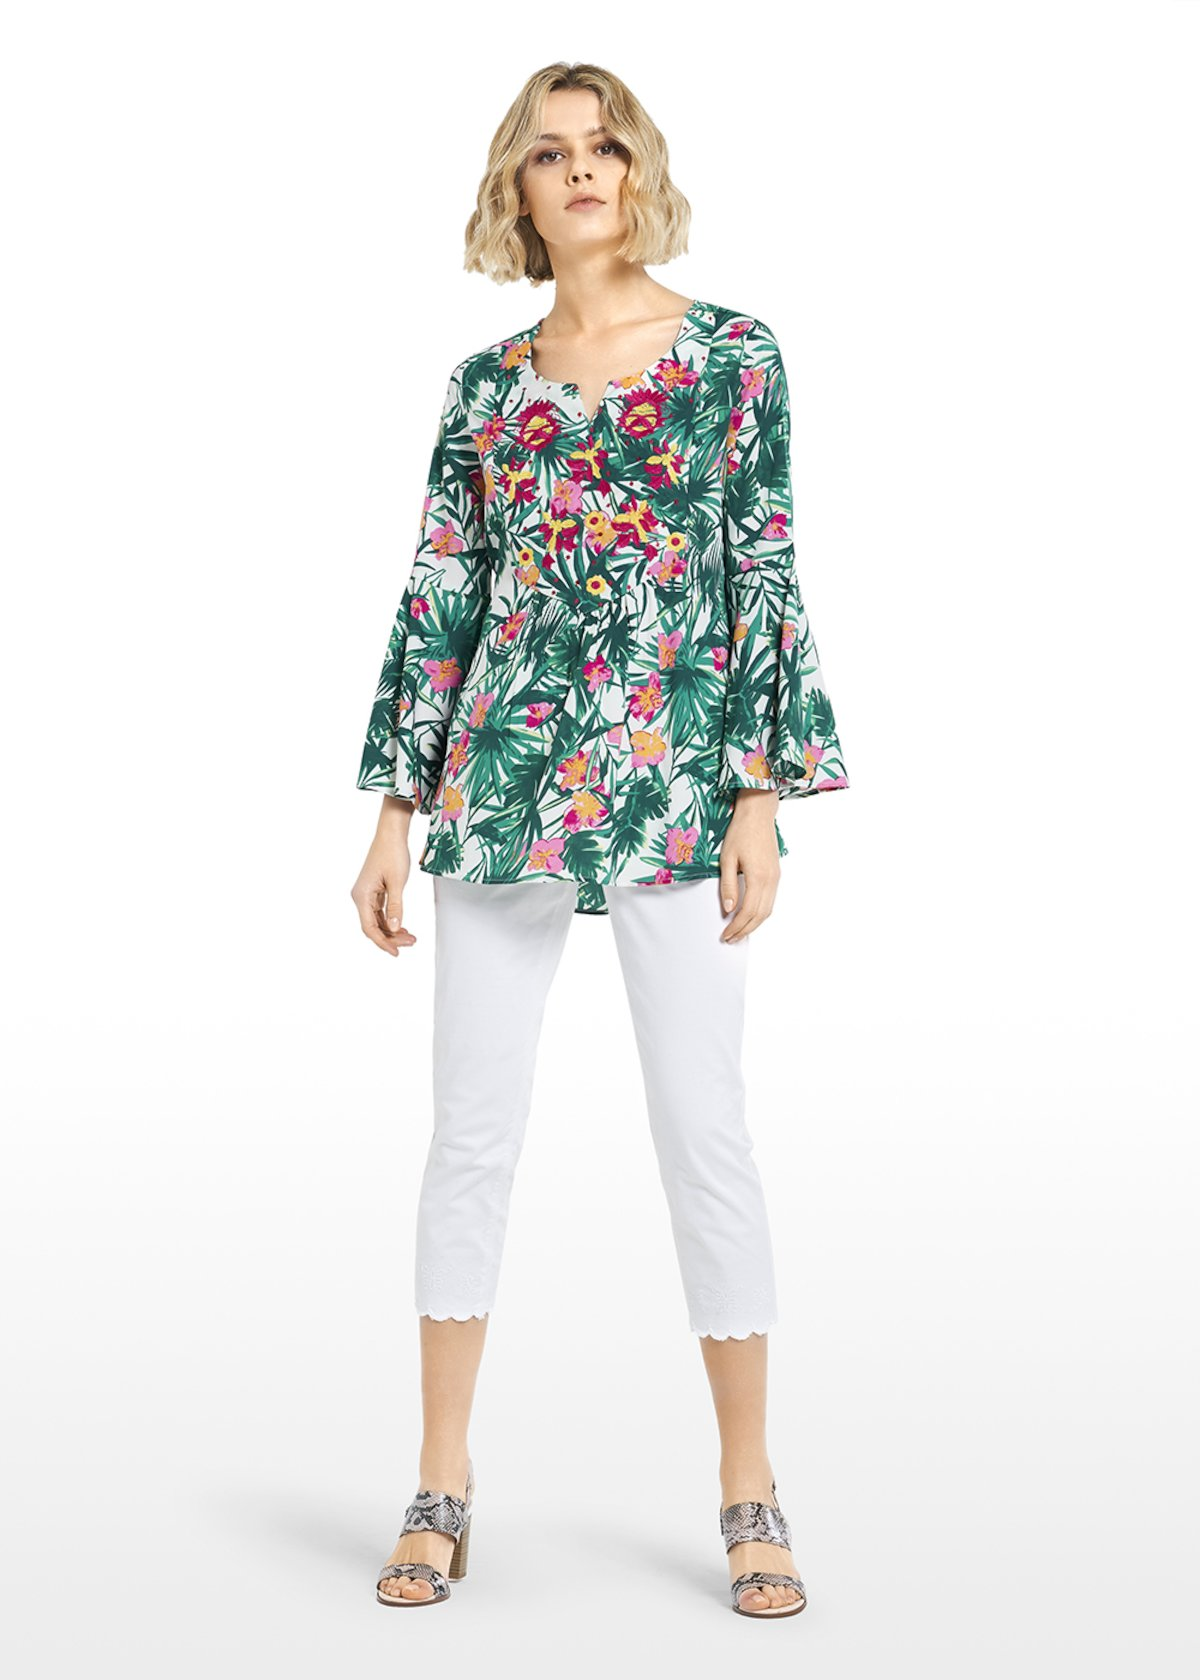 Consuelo blouse tropical leaves and flowers print - White\ Amazon\ Fantasia - Woman - Category image